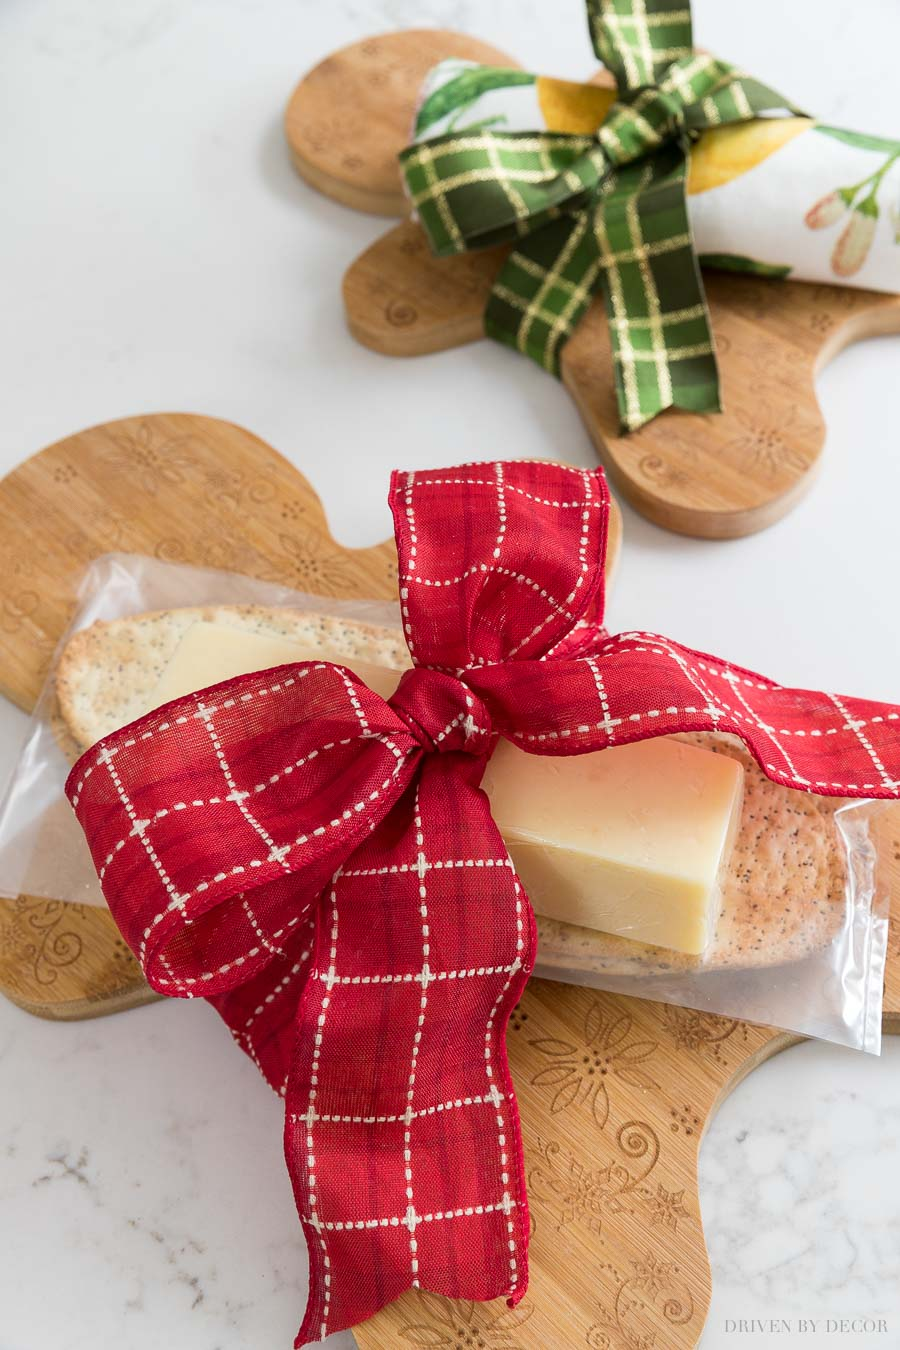 The cutest thank you or hostess gift idea - love these gingerbread cutting boards!